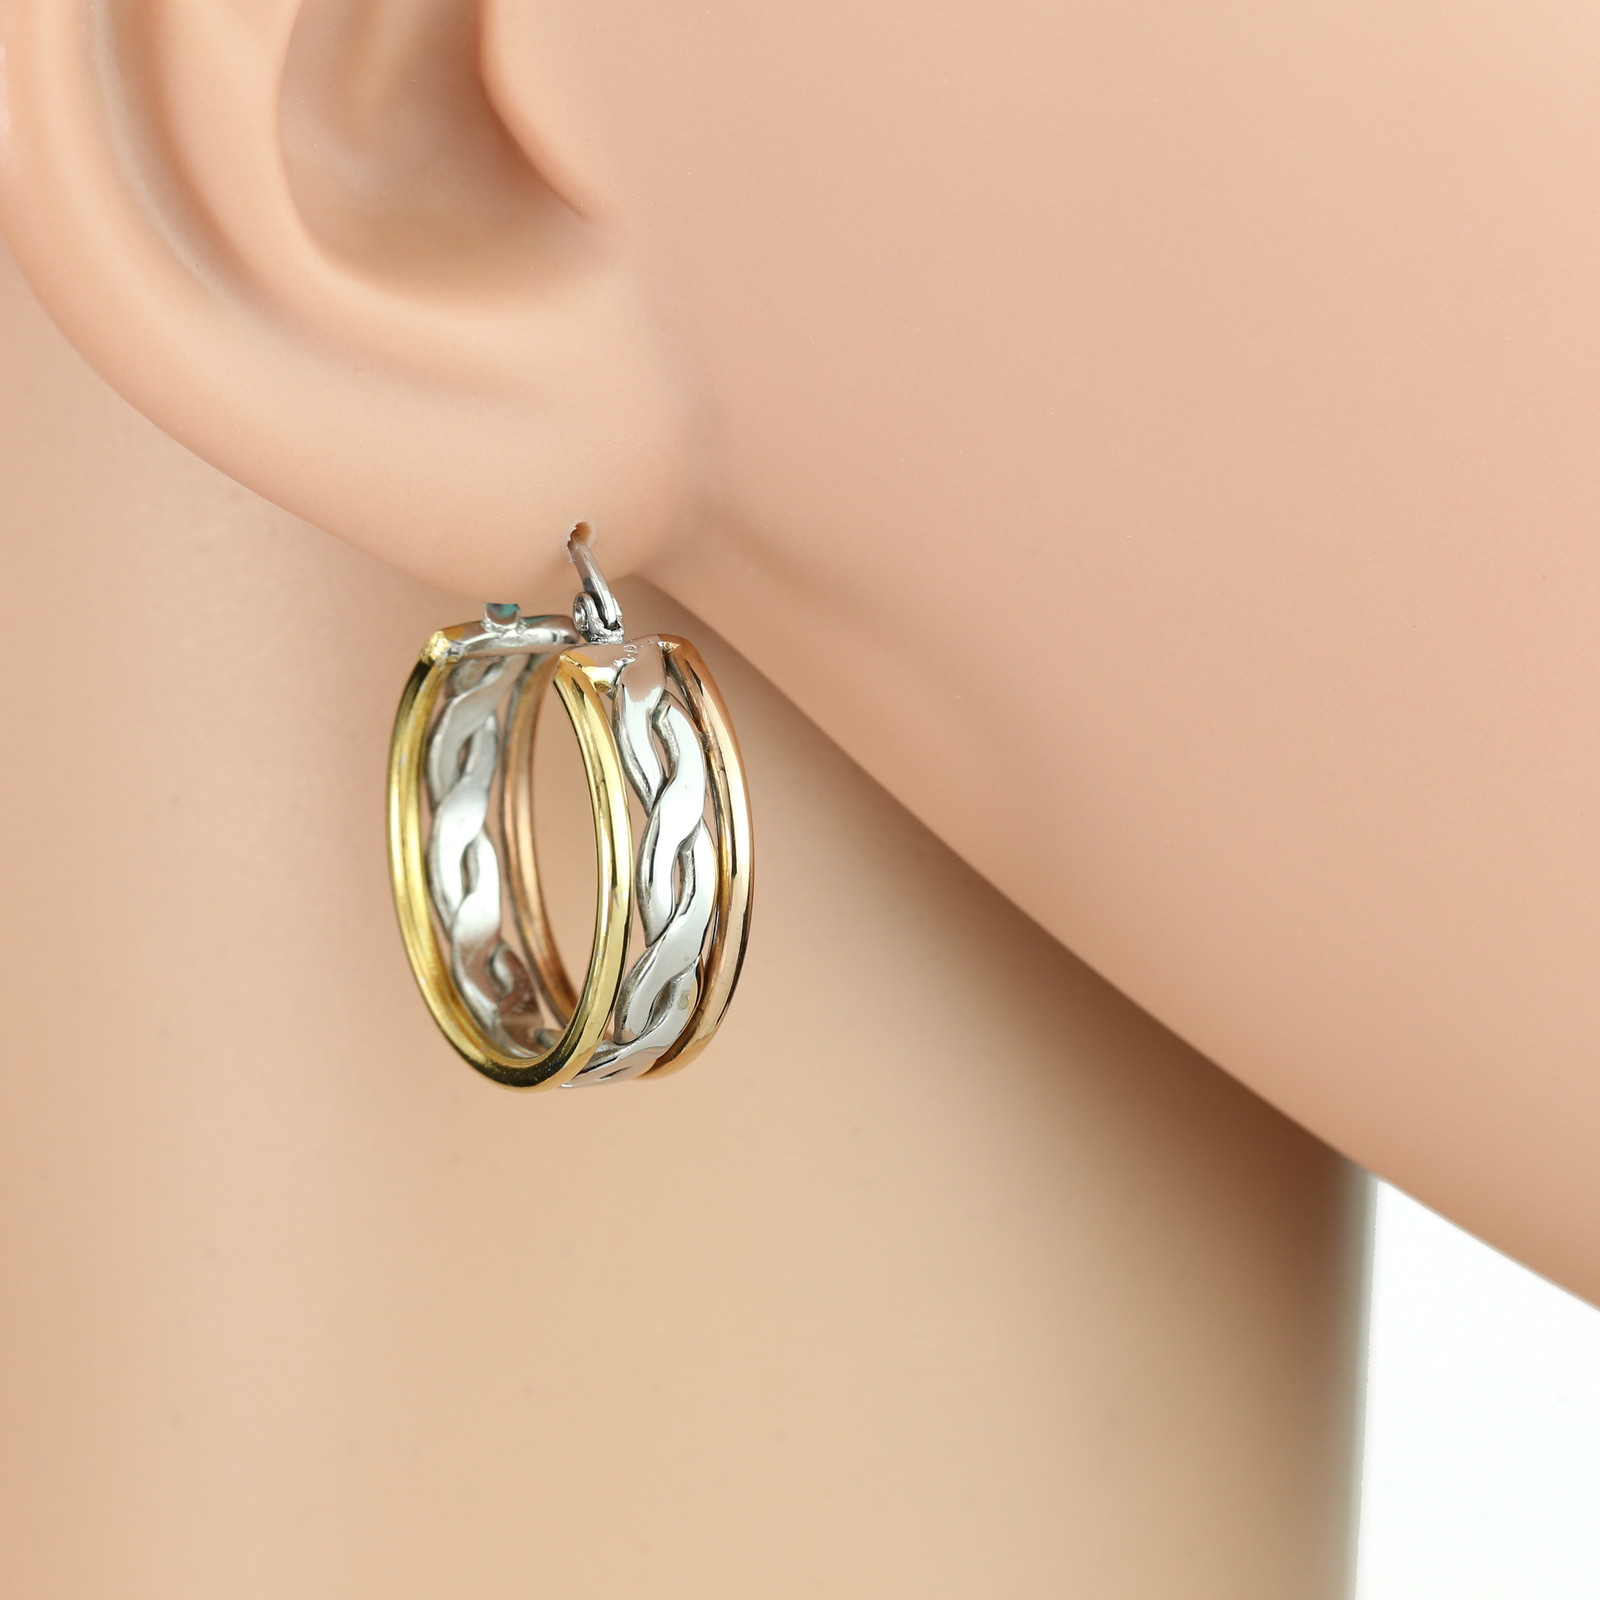 Unique Twisted Tri-Color Silver, Gold & Rose Tone Hoop Earrings- United Elegance